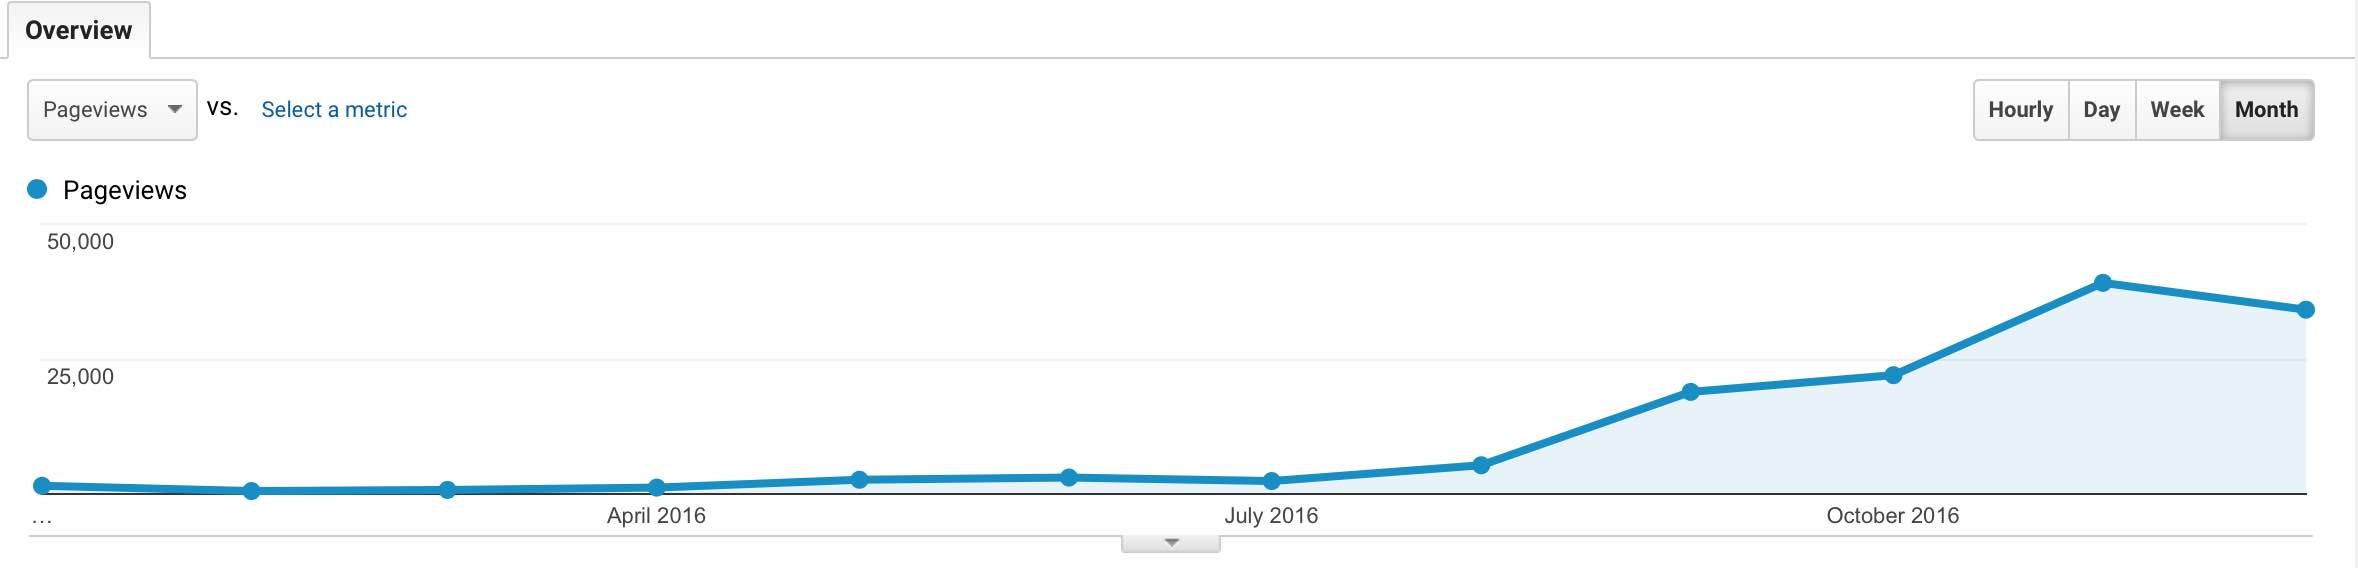 page-views-month